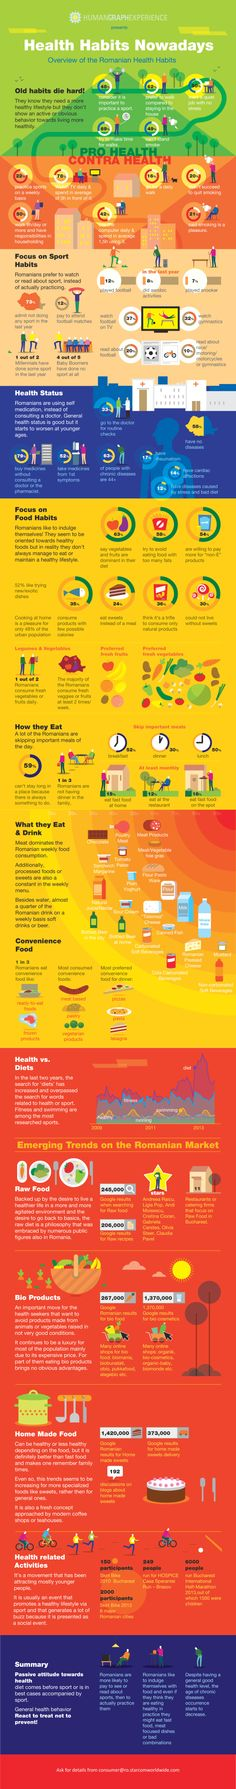 Health Habits Nowadays - Overview of the Romanian Health Habits